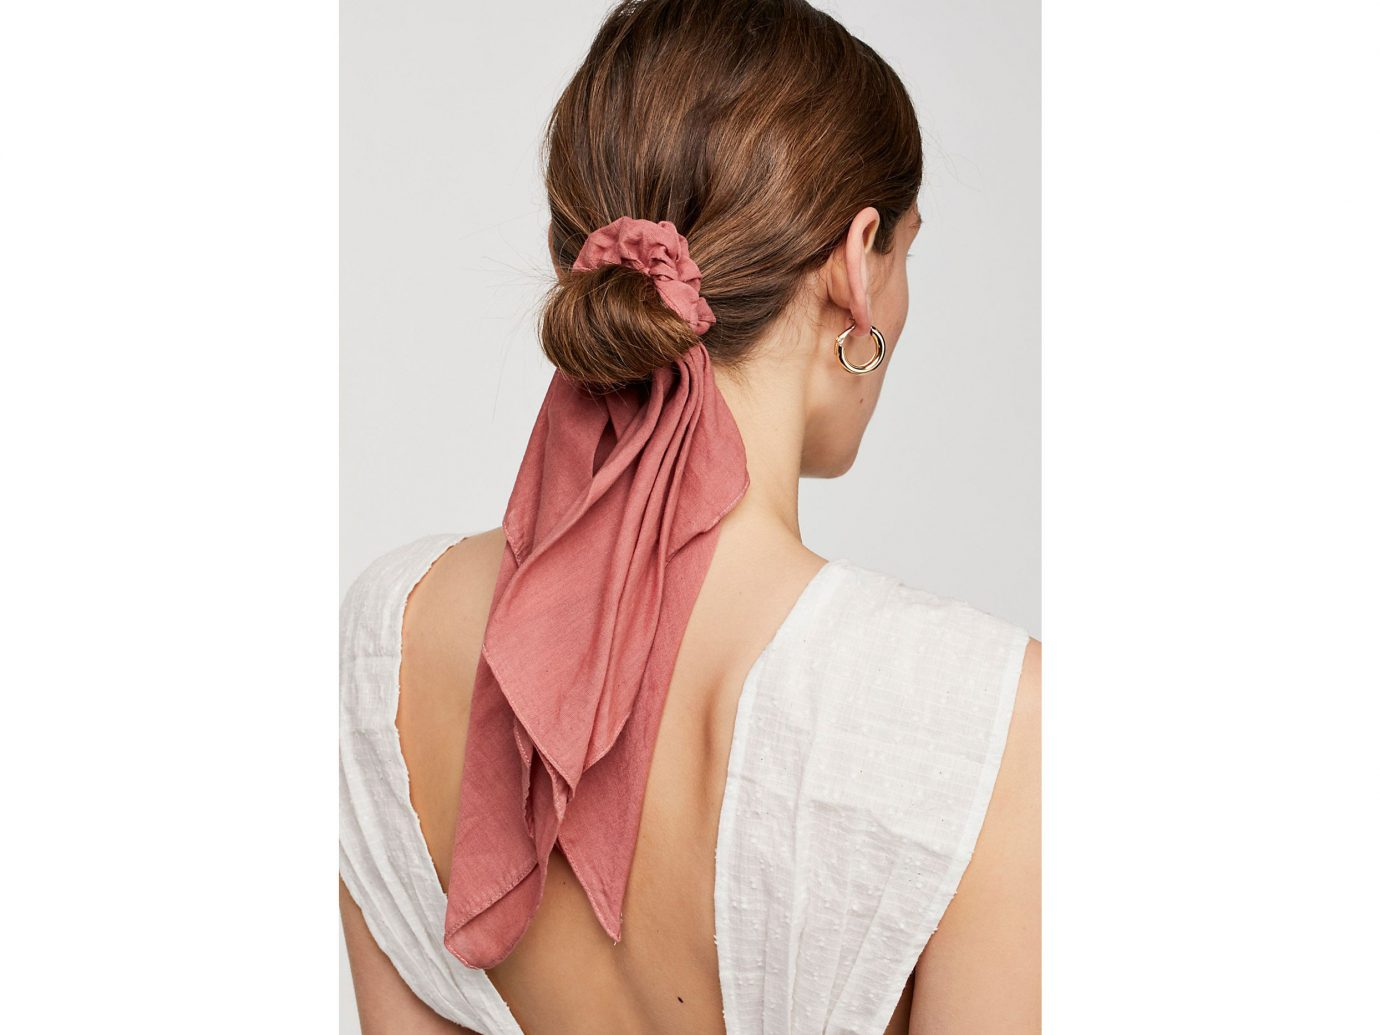 Spring Travel Style + Design Summer Travel Travel Lifestyle Travel Shop person woman hair hairstyle neck shoulder Beauty joint forehead hair accessory hair coloring bun long hair hair tie chignon lady brown hair back ponytail